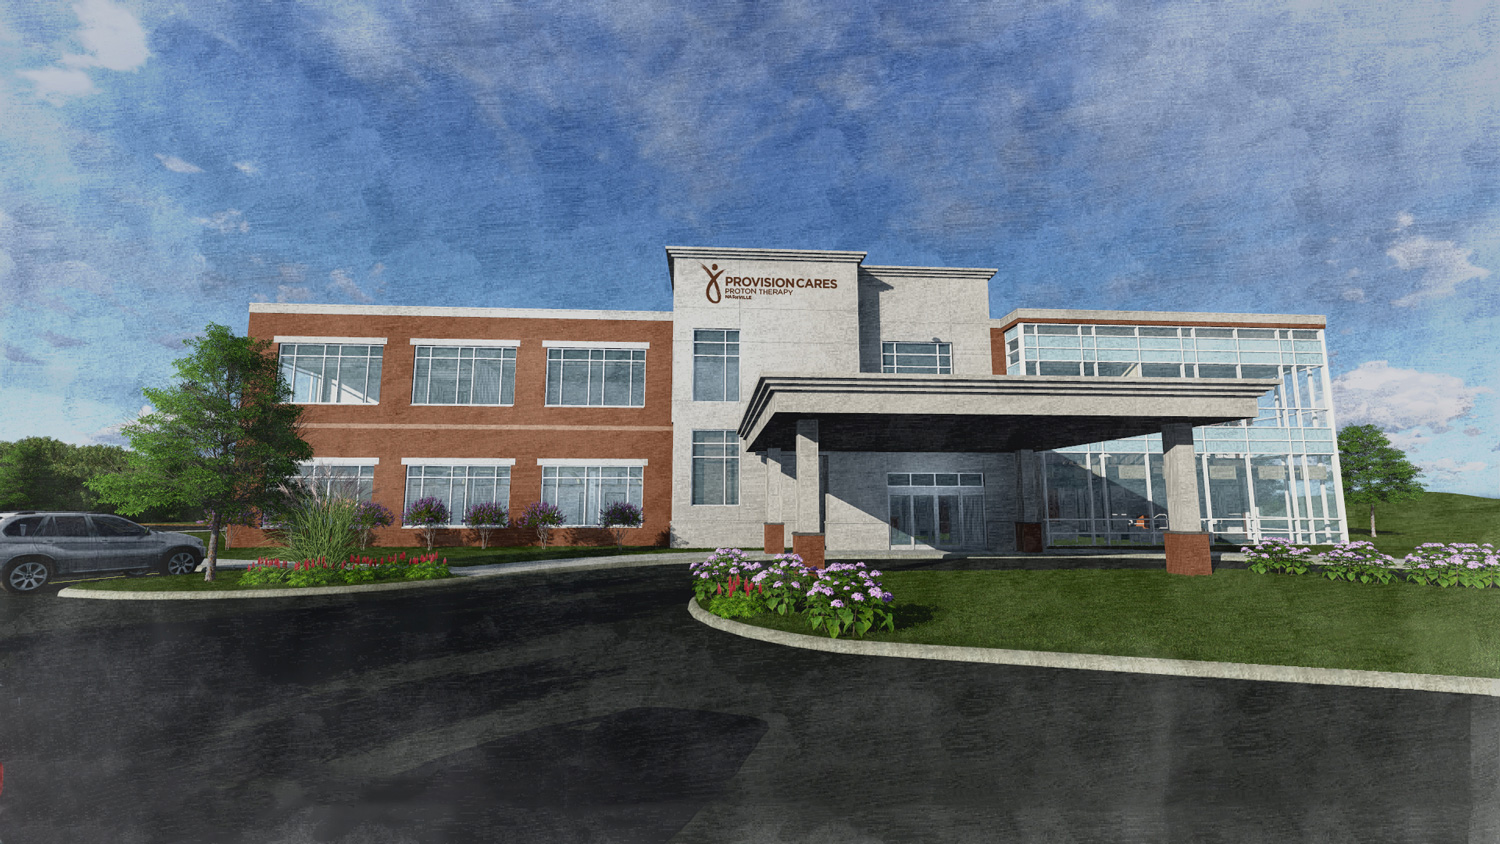 Provision CARES Proton Therapy - Nashville Archives